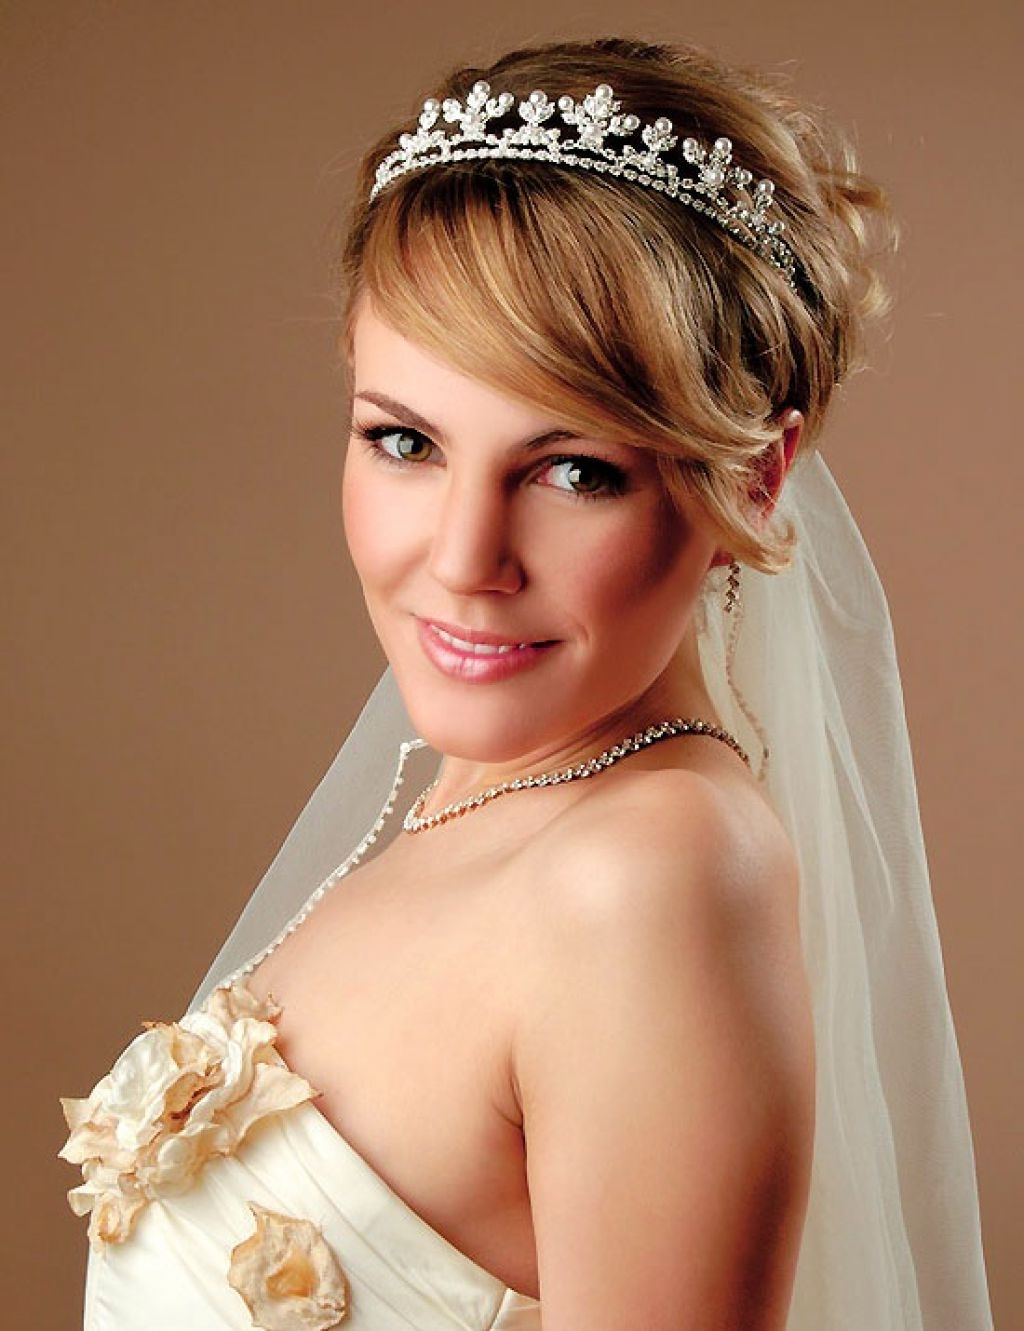 Newest Wedding Hairstyles For Short Hair With Bangs Pertaining To Hairstyles : Wedding Hairstyles For Short Hair With Bangs Best (View 12 of 15)